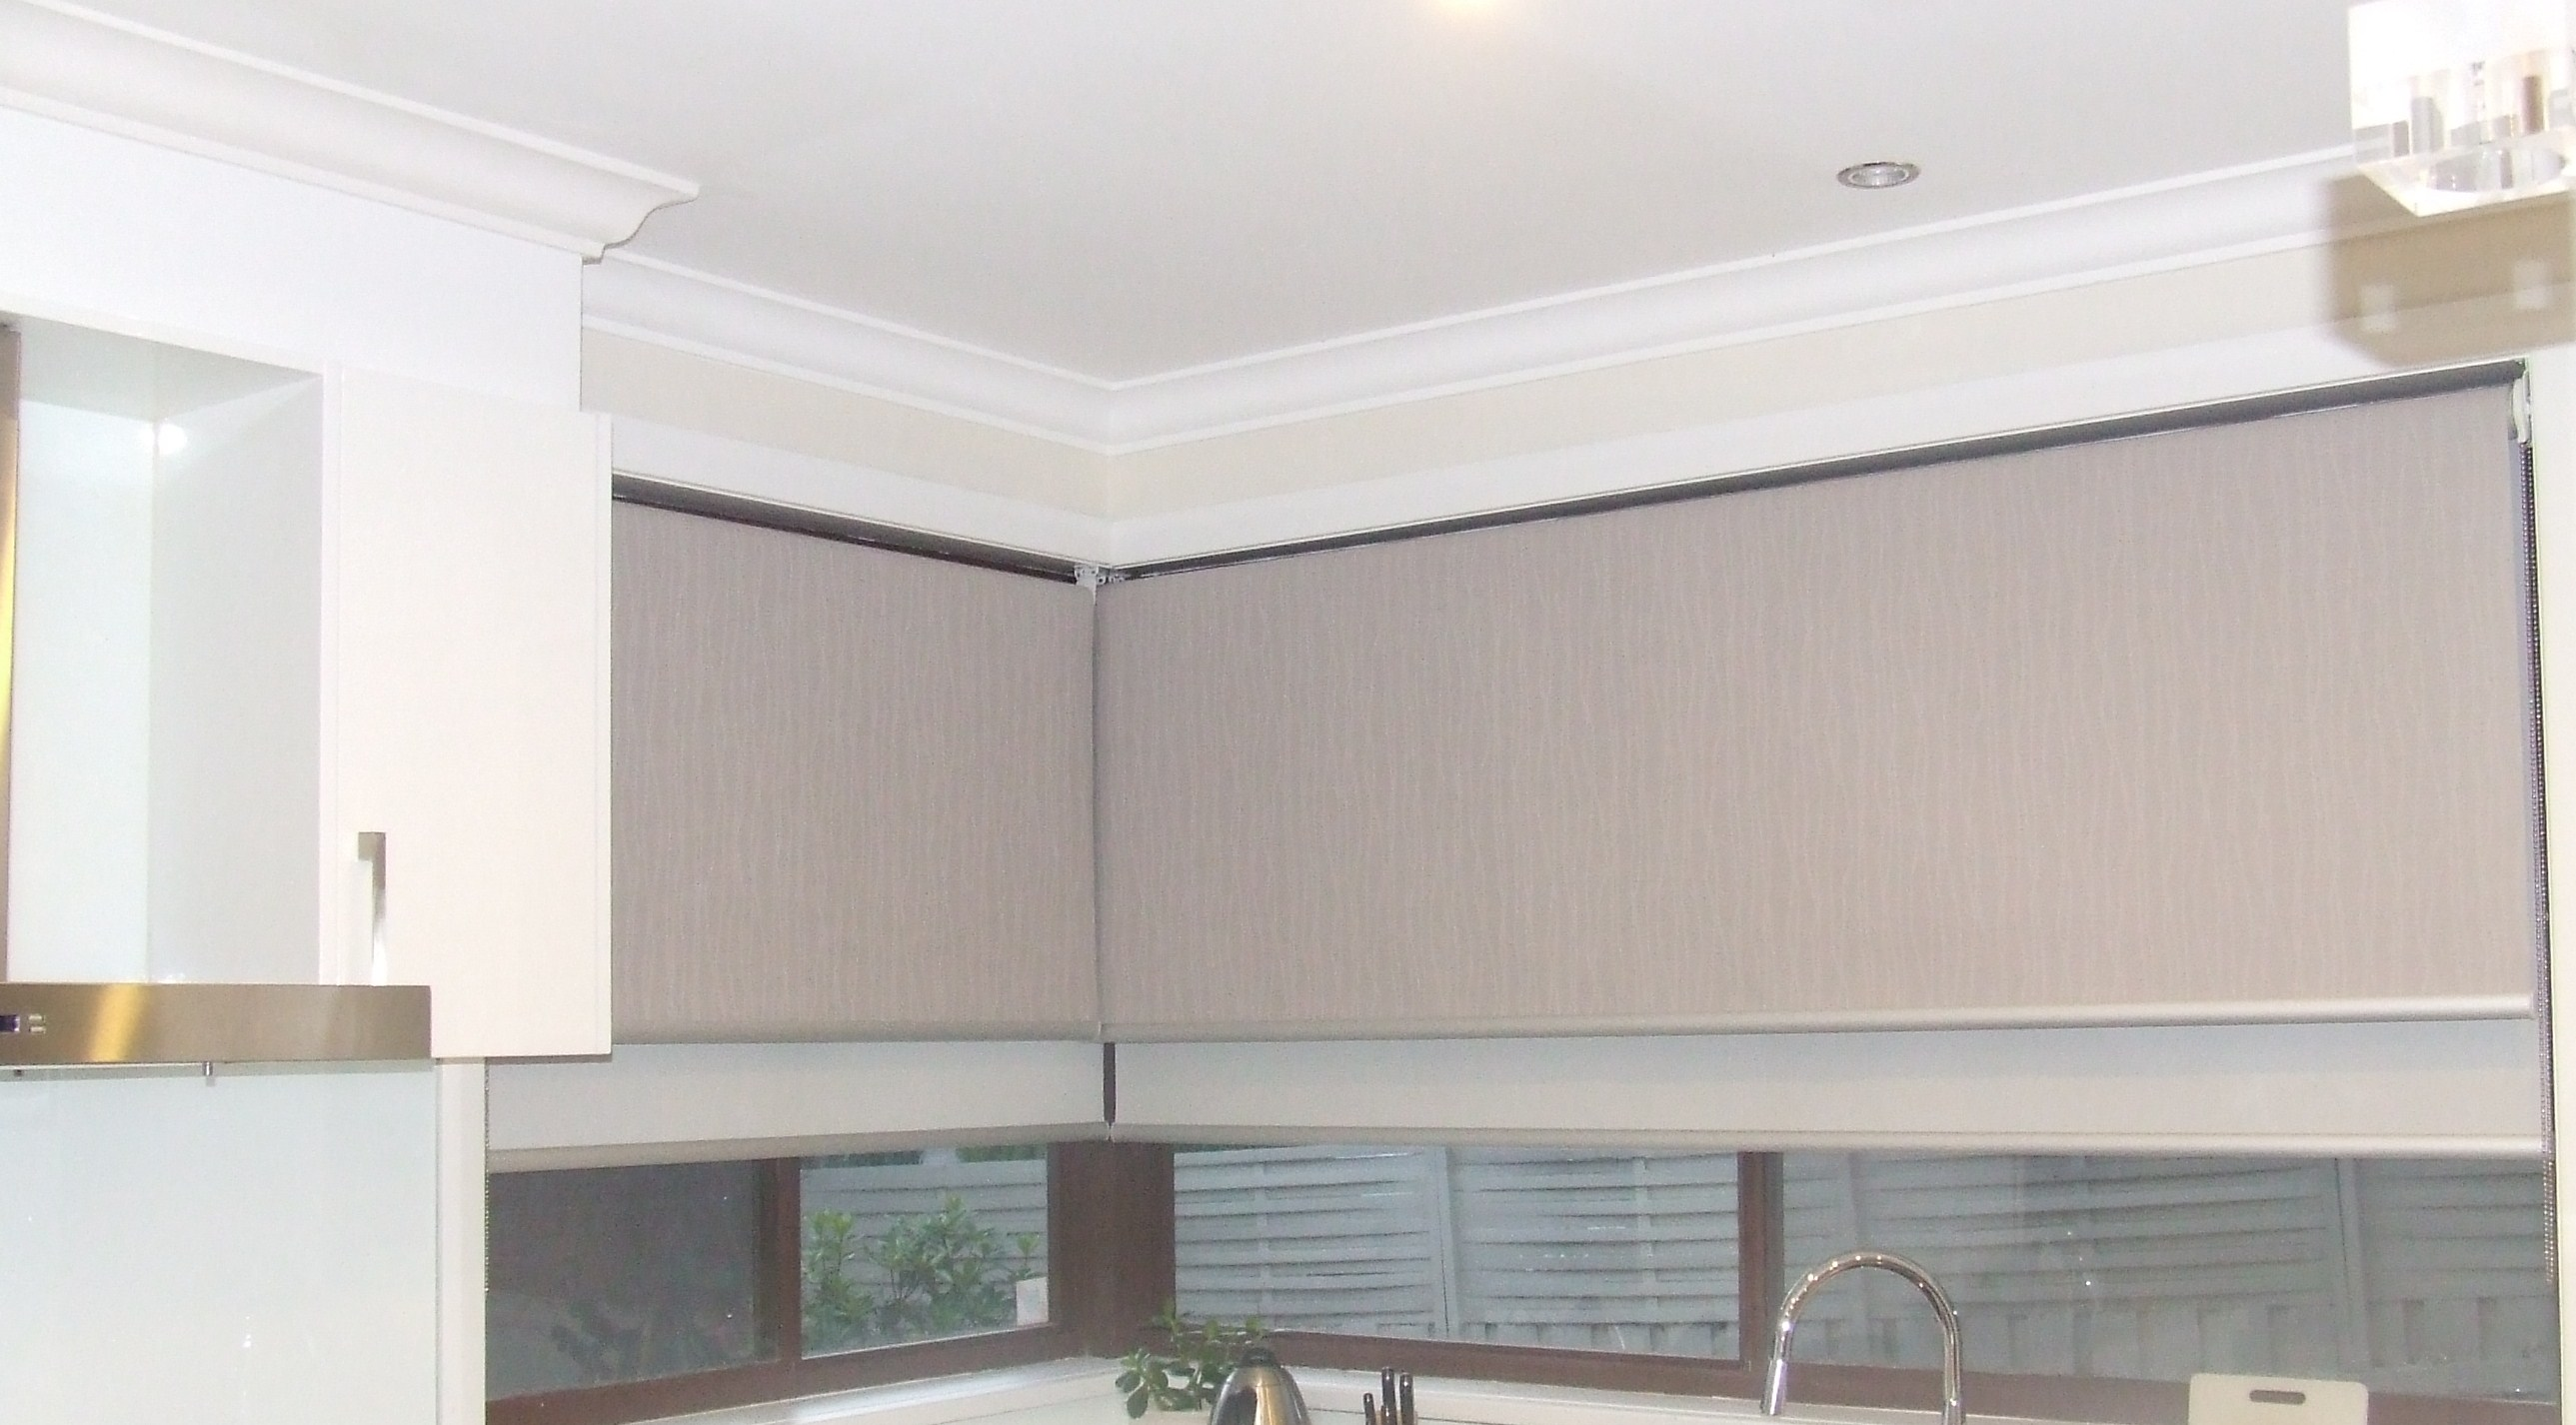 Holland Blinds Sunscreen Blinds Blackout Blinds